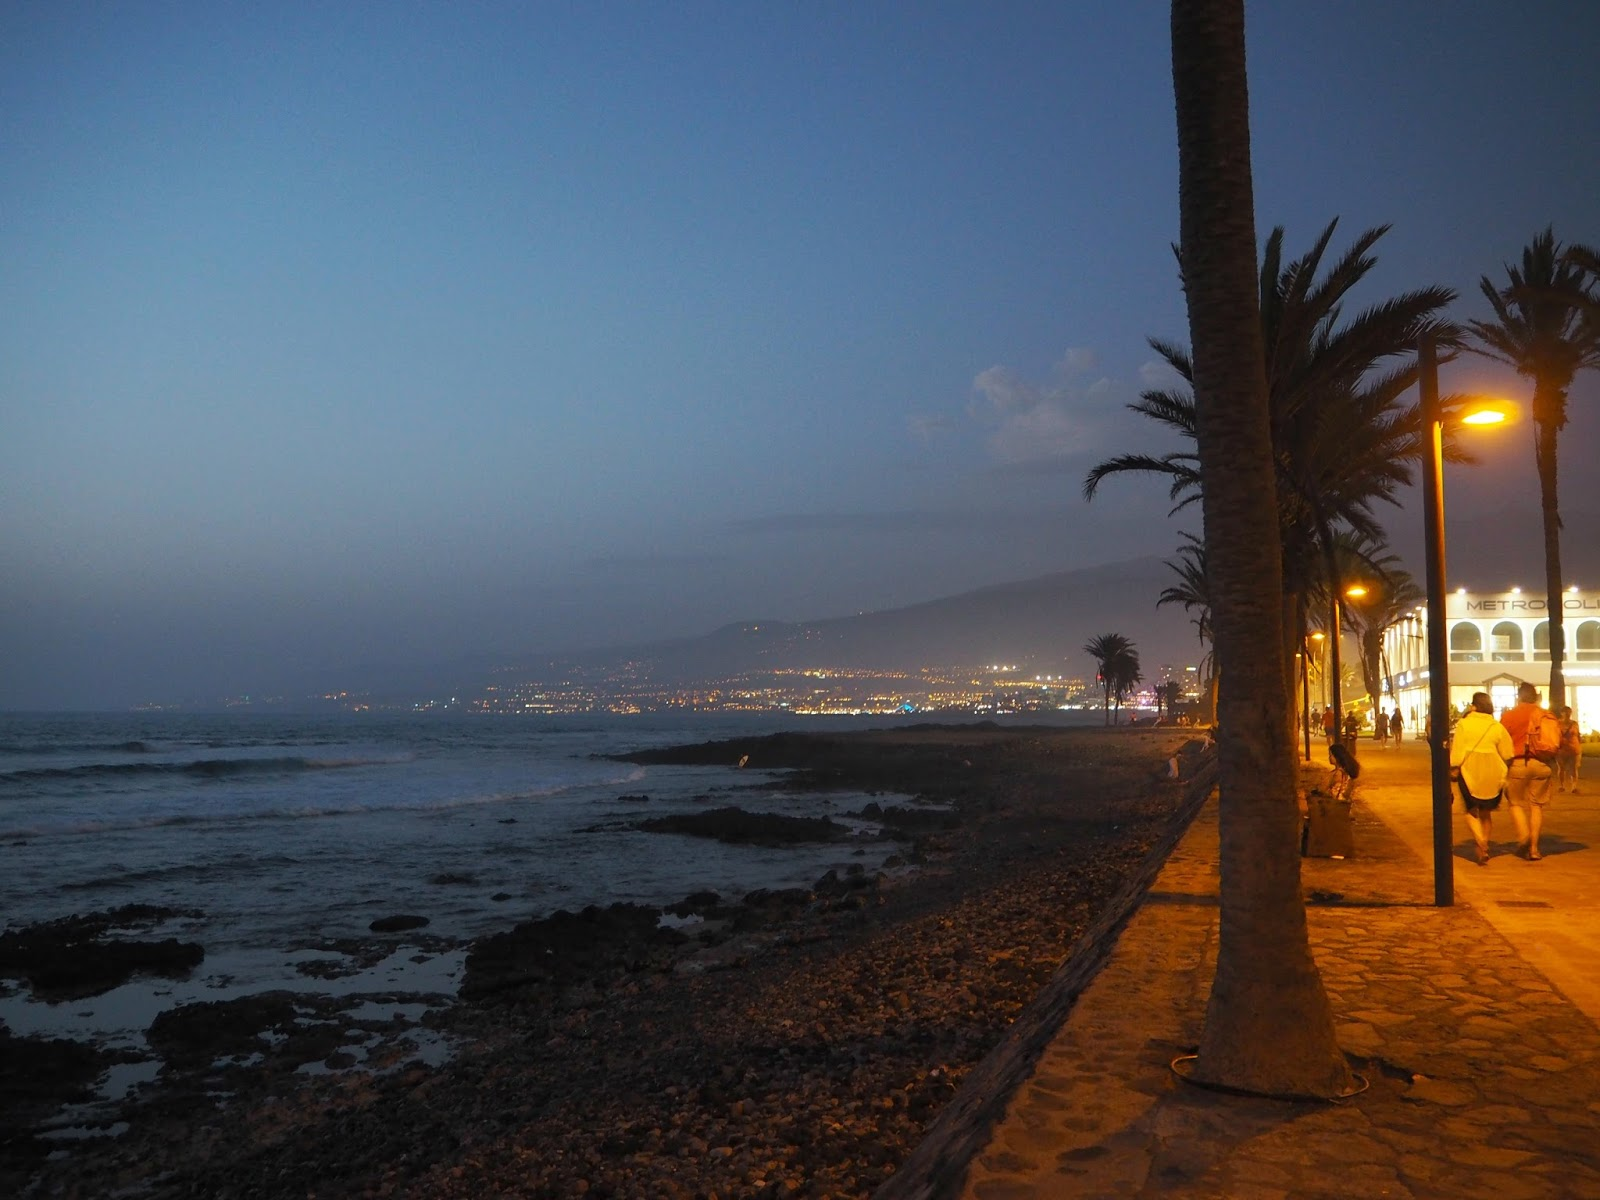 summer evening in tenerife